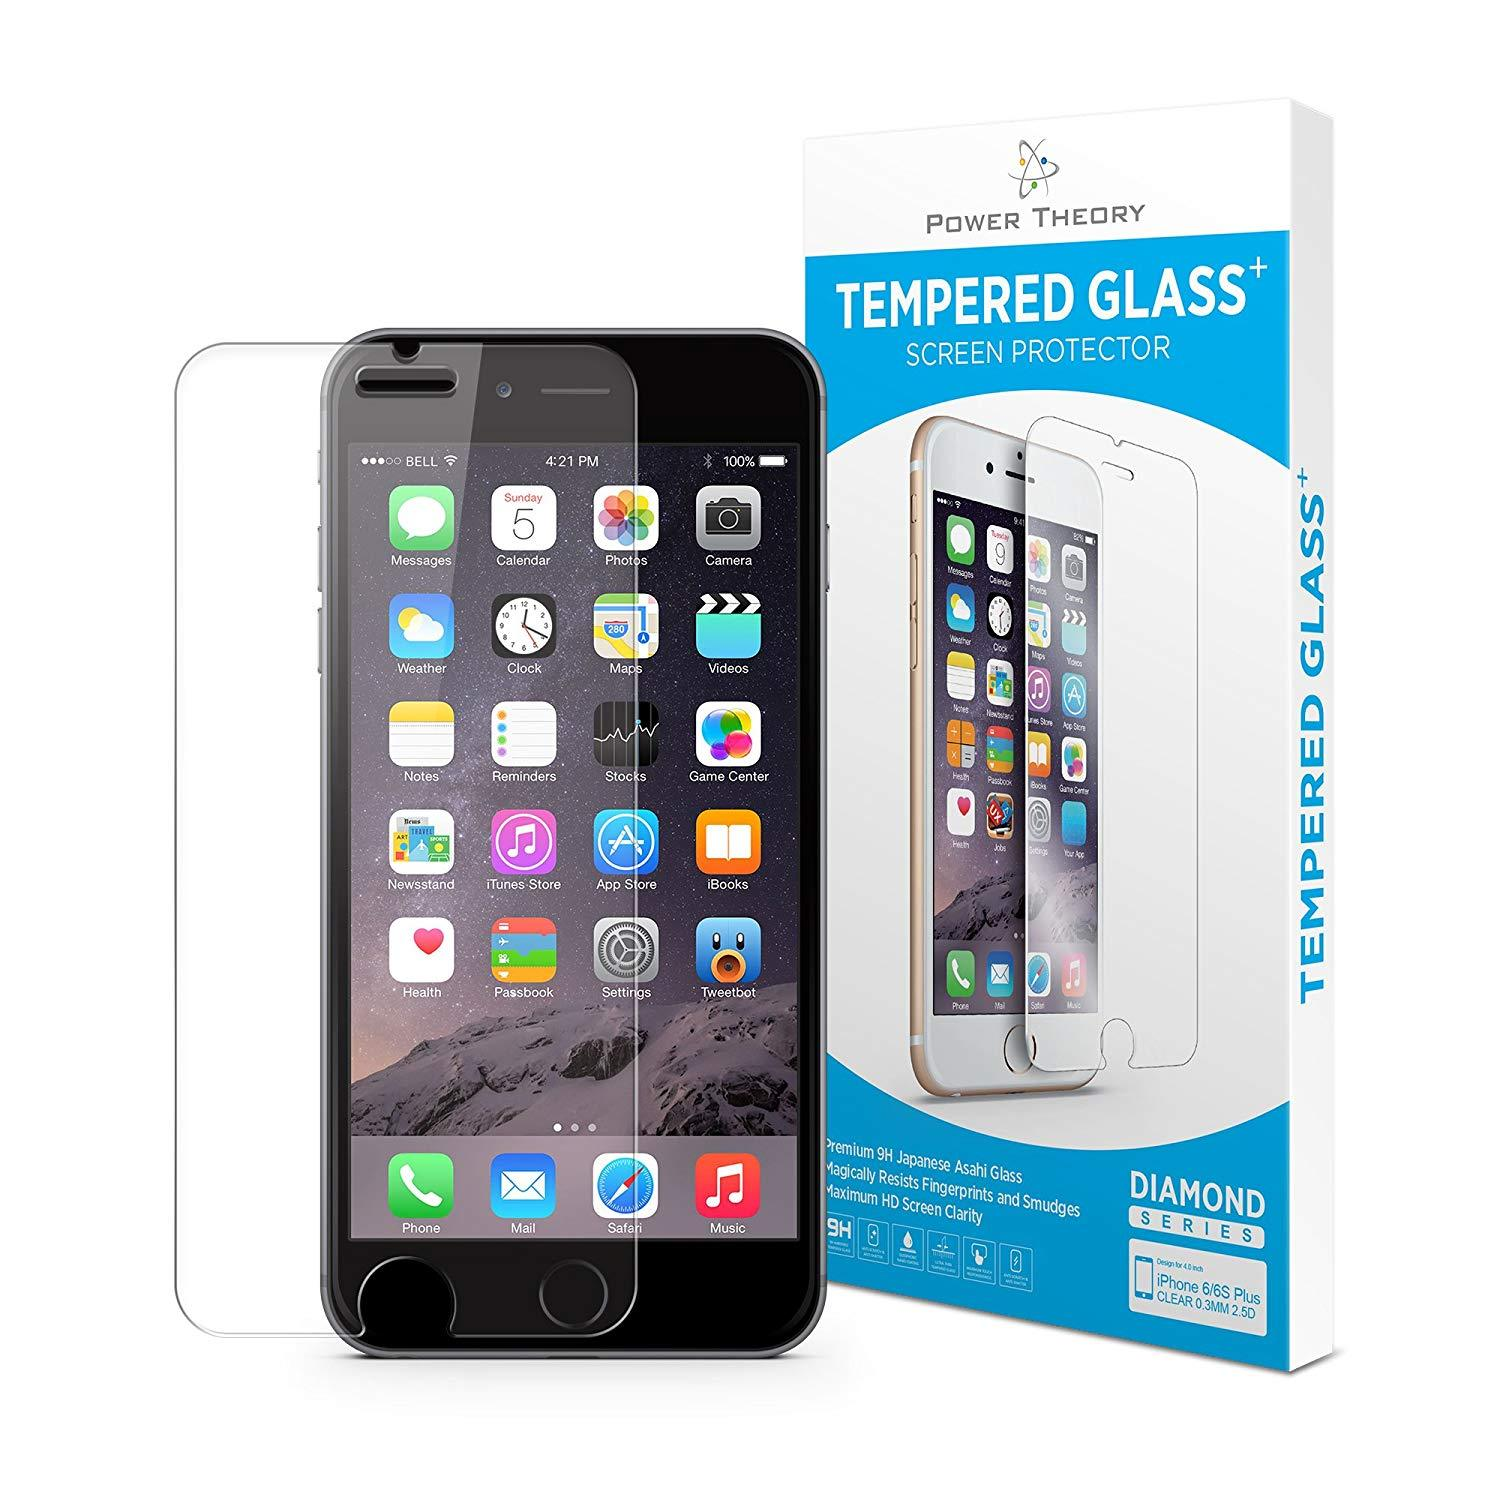 Power Theory iPhone 6/6s Screen Protectors [1-Pack] Premium Tempered Glass Screen Protector with Easy App Install Kit for Apple iPhone6s/iPhone6